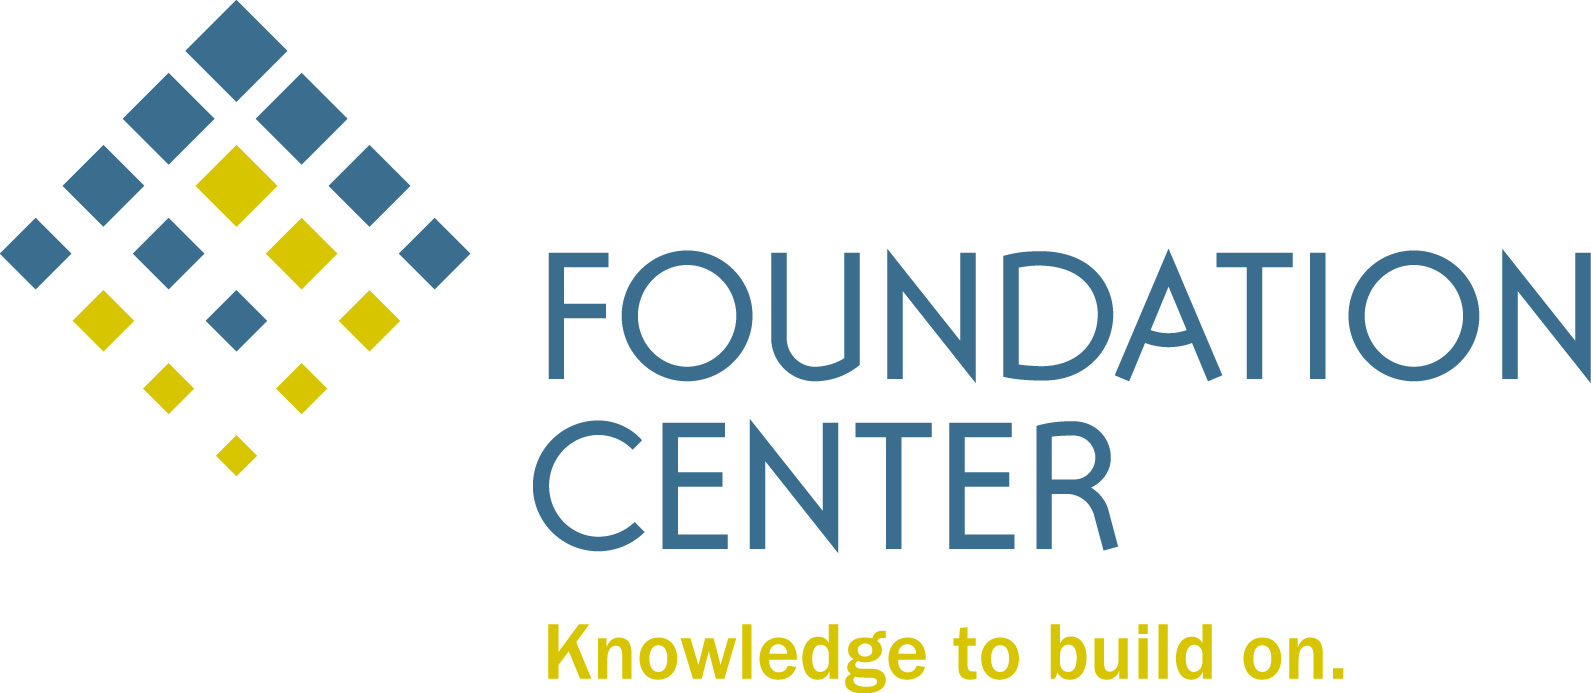 Foundation Center Funding Network